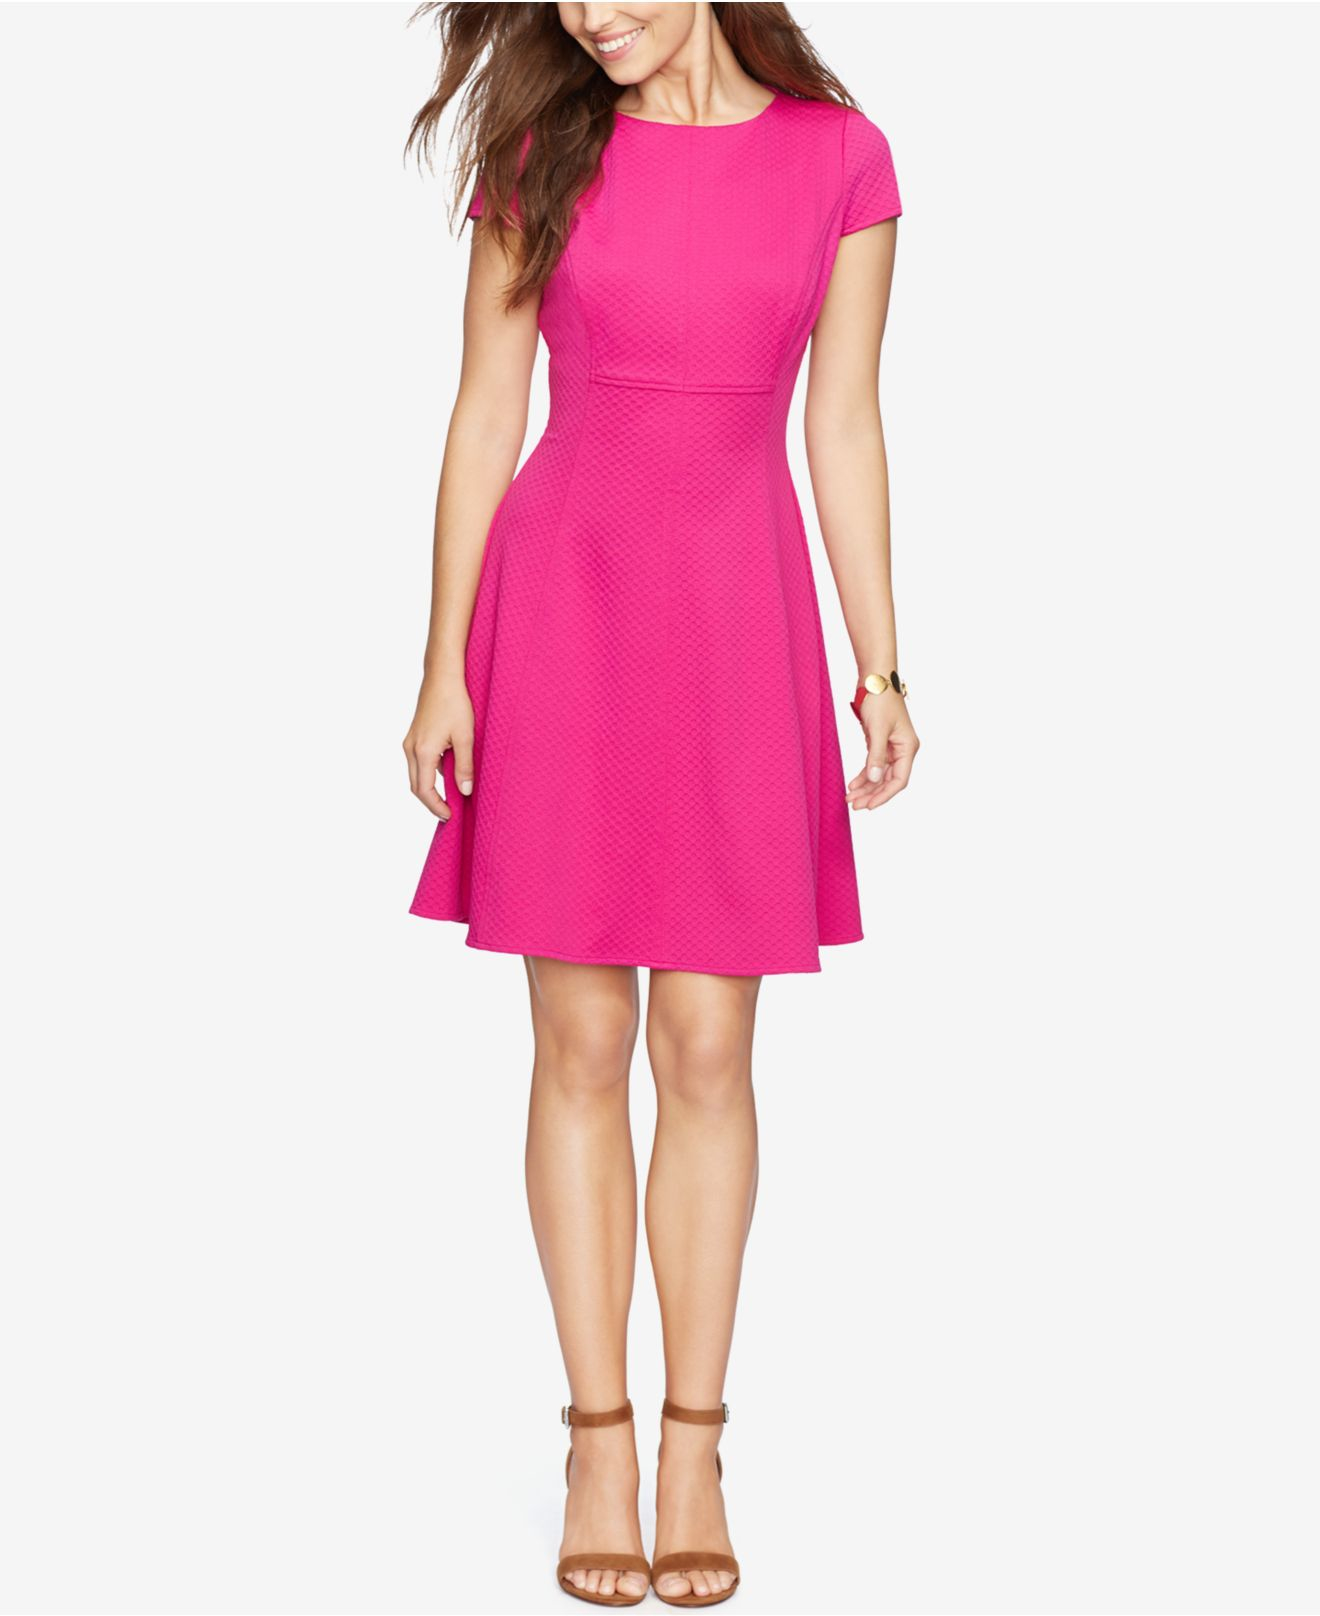 American Living Waffle Knit Jacquard Dress In Pink Lyst